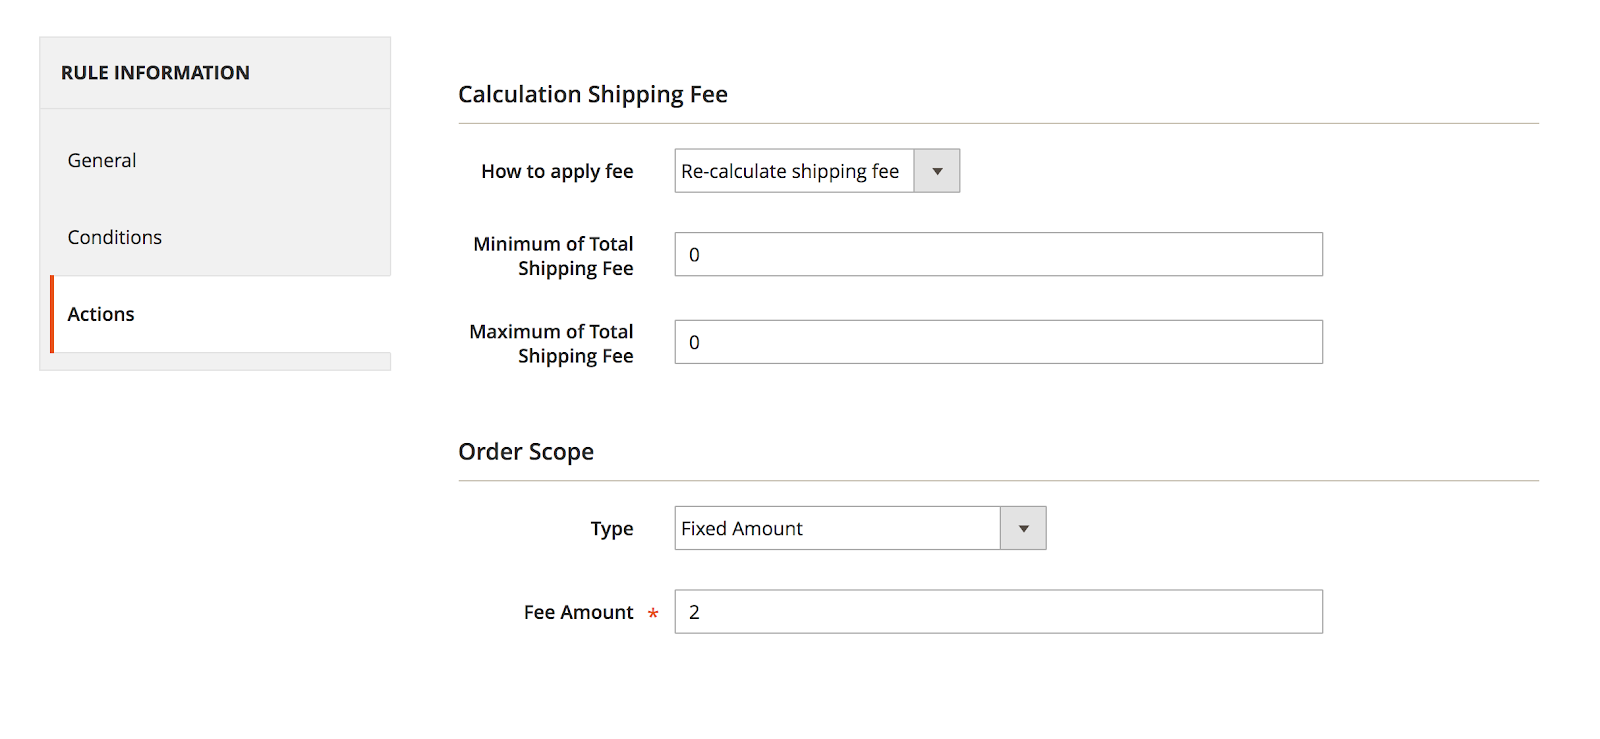 Most applicable shipping rules for Magento 2 and Configuration